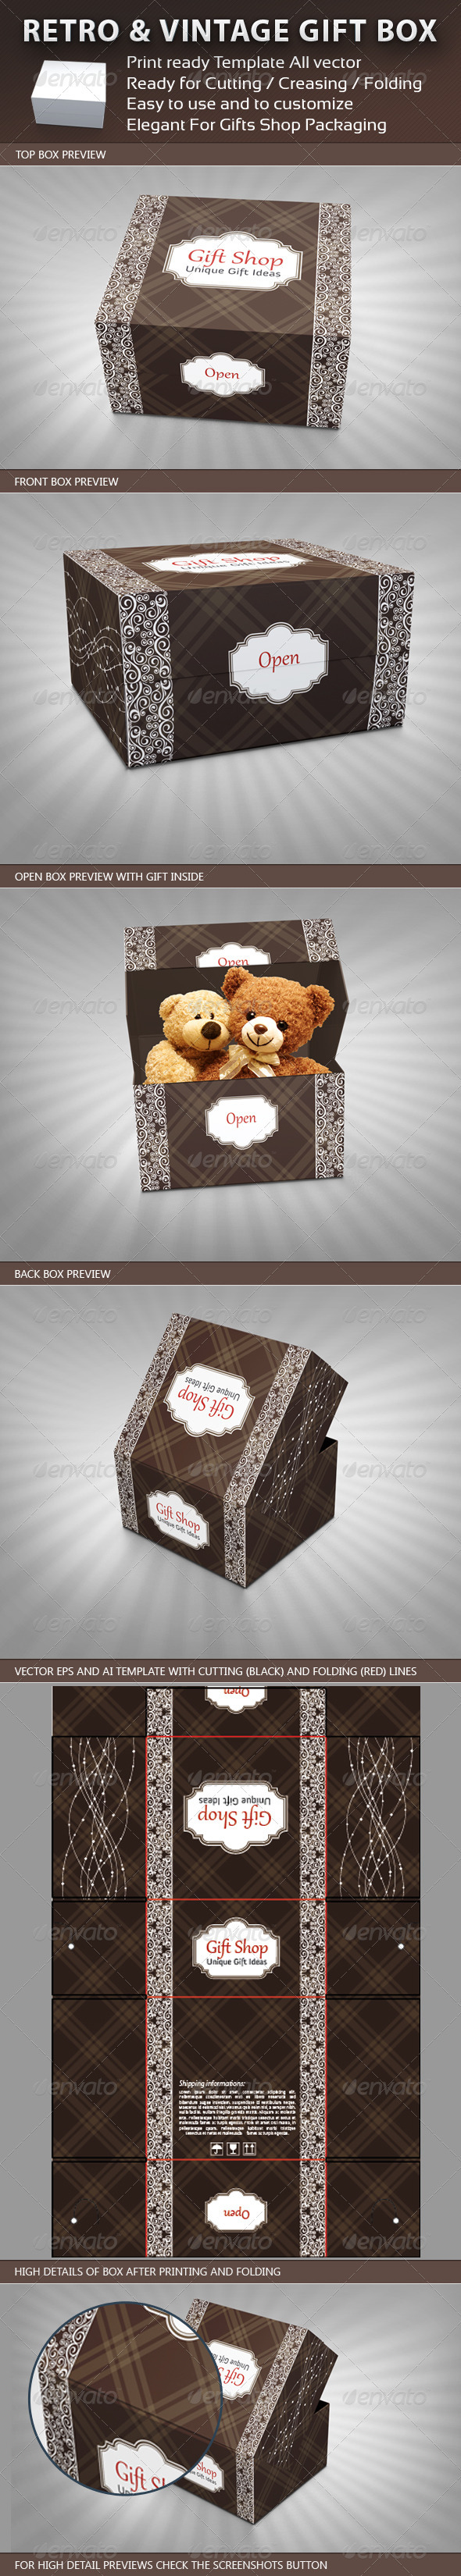 Retro and Vintage Gift Box Package Template - Packaging Print Templates